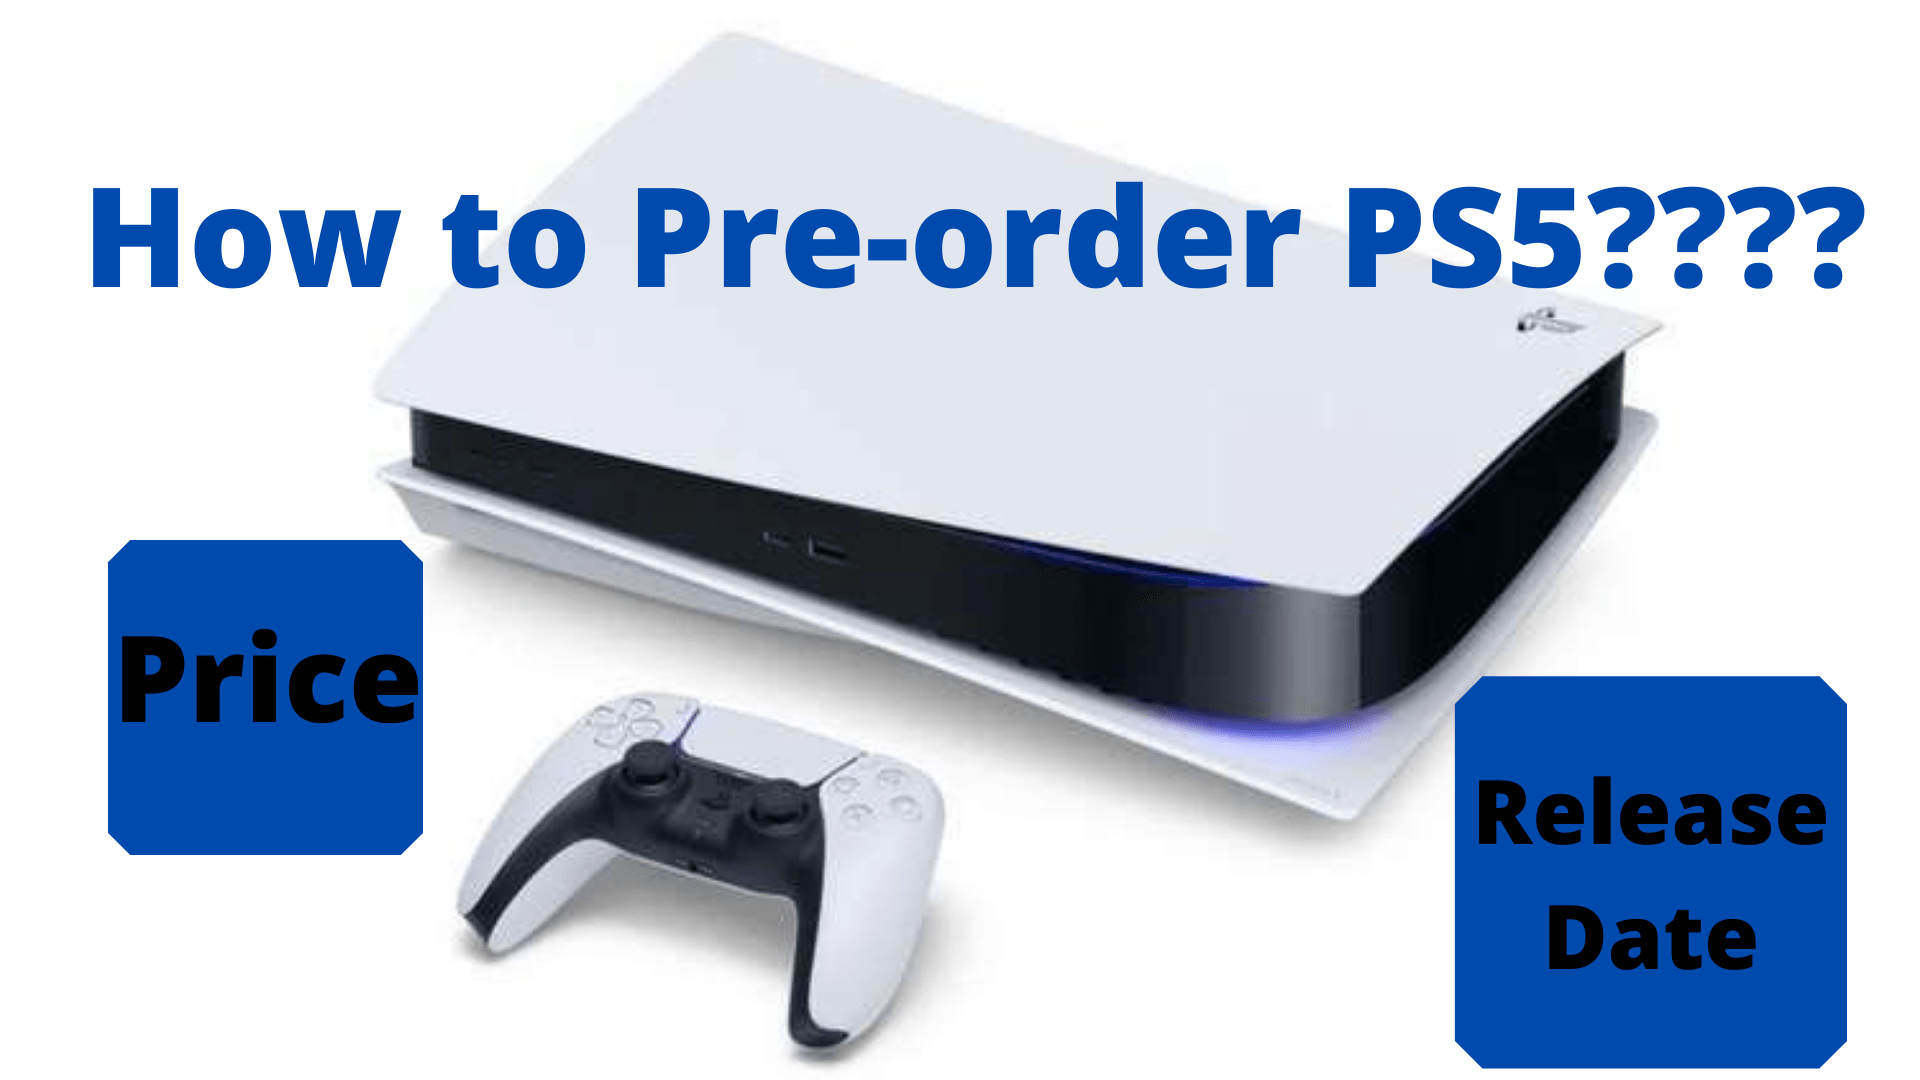 How to Pre-order PS5